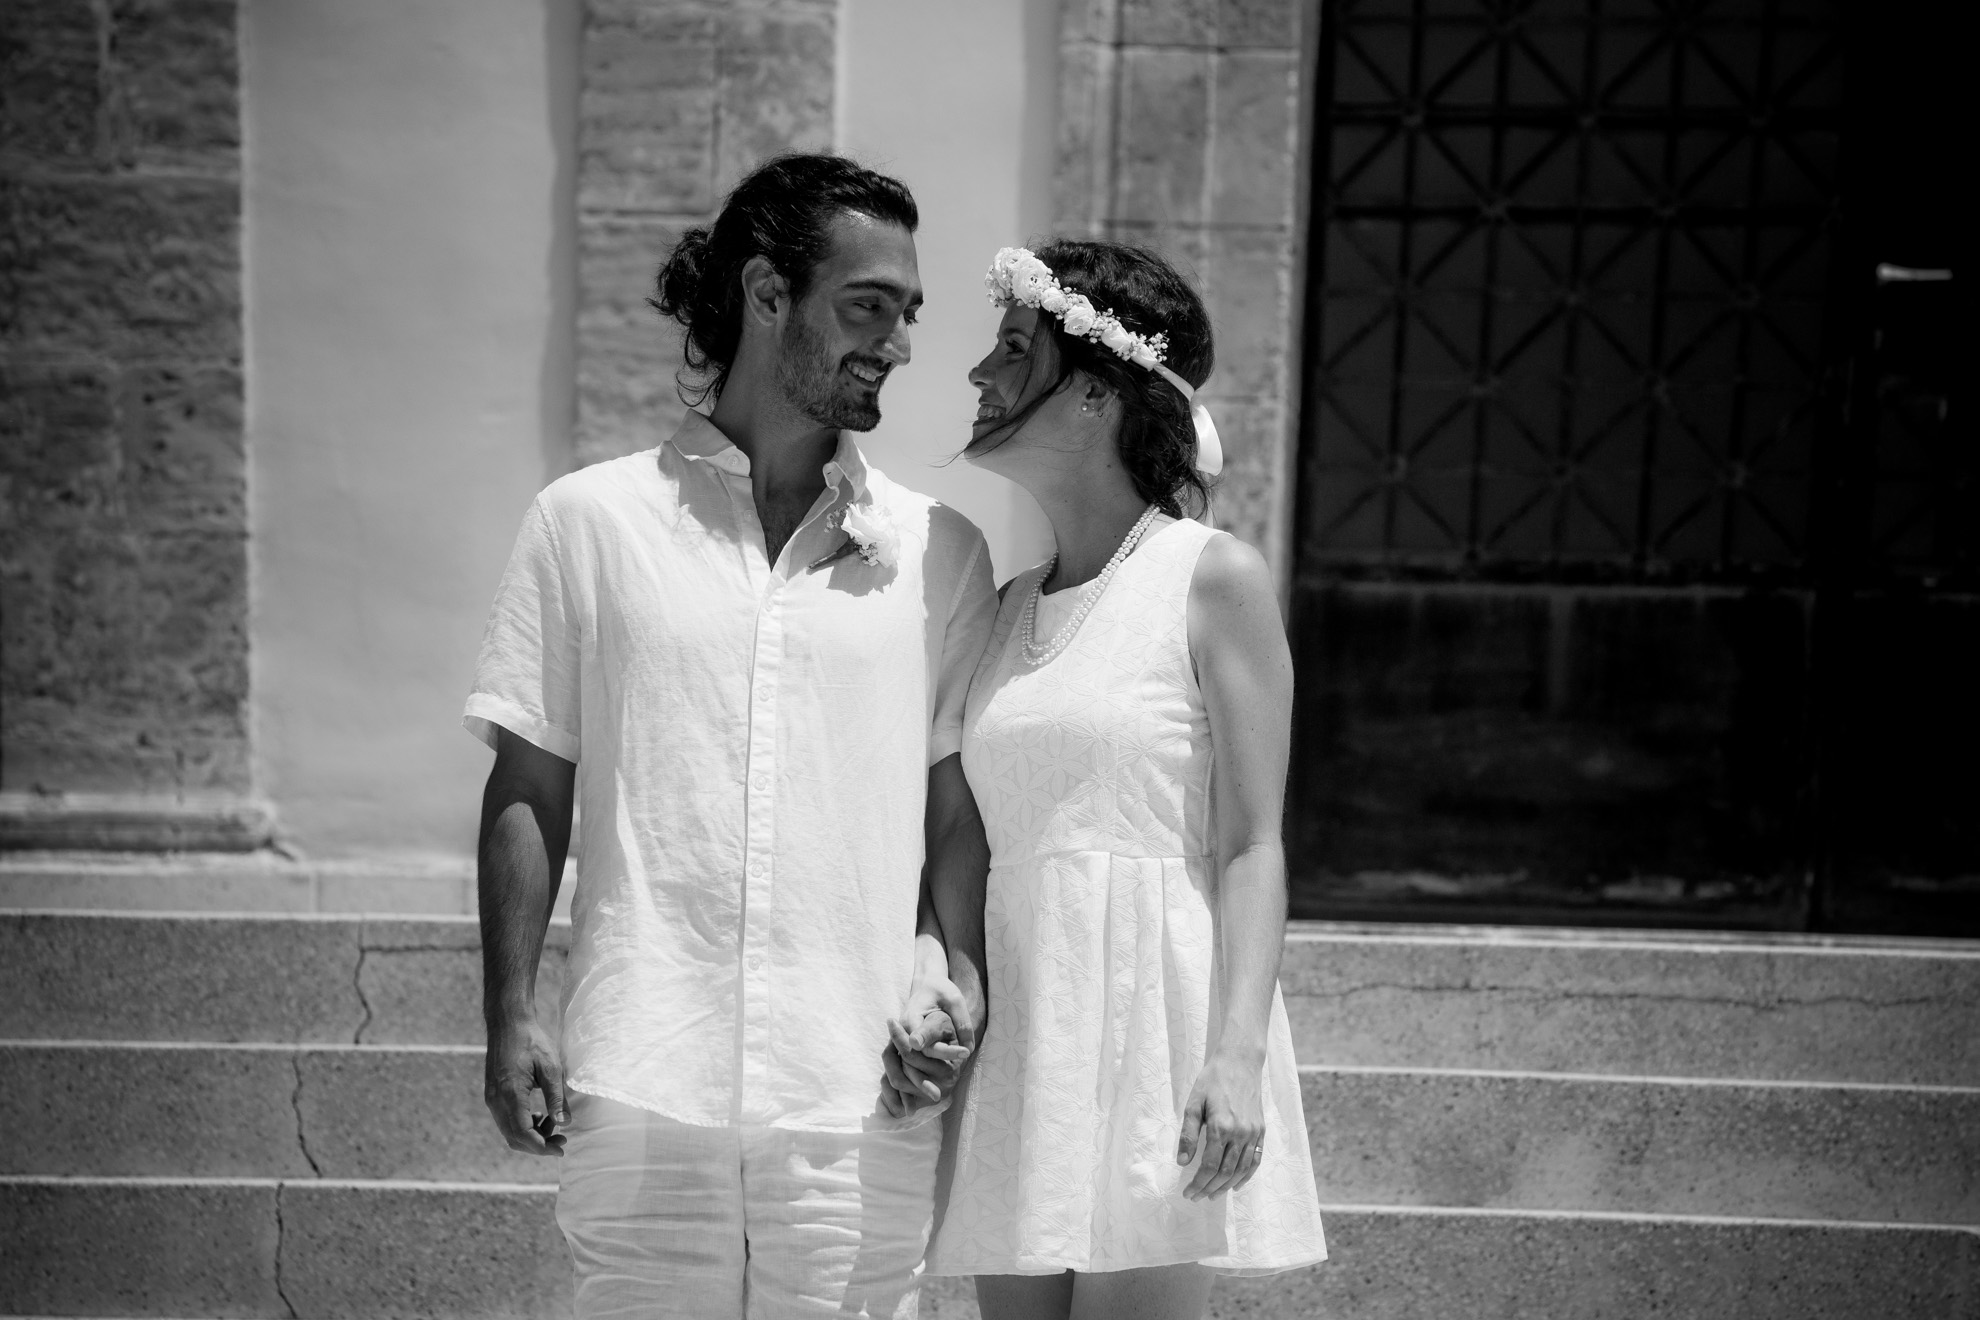 couple after their wedding in Pafos, photography by spyros christofi photographed in black and white